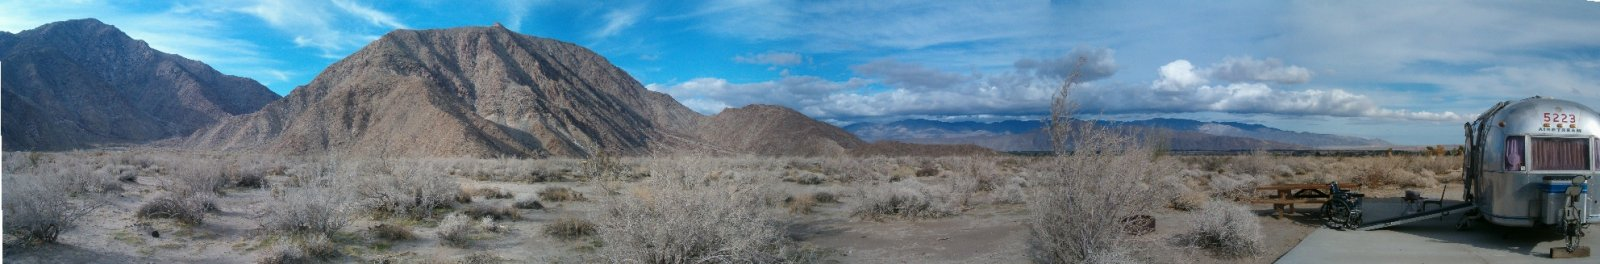 Click image for larger version  Name:Palm Canyon Campsite.jpg Views:82 Size:93.5 KB ID:96315